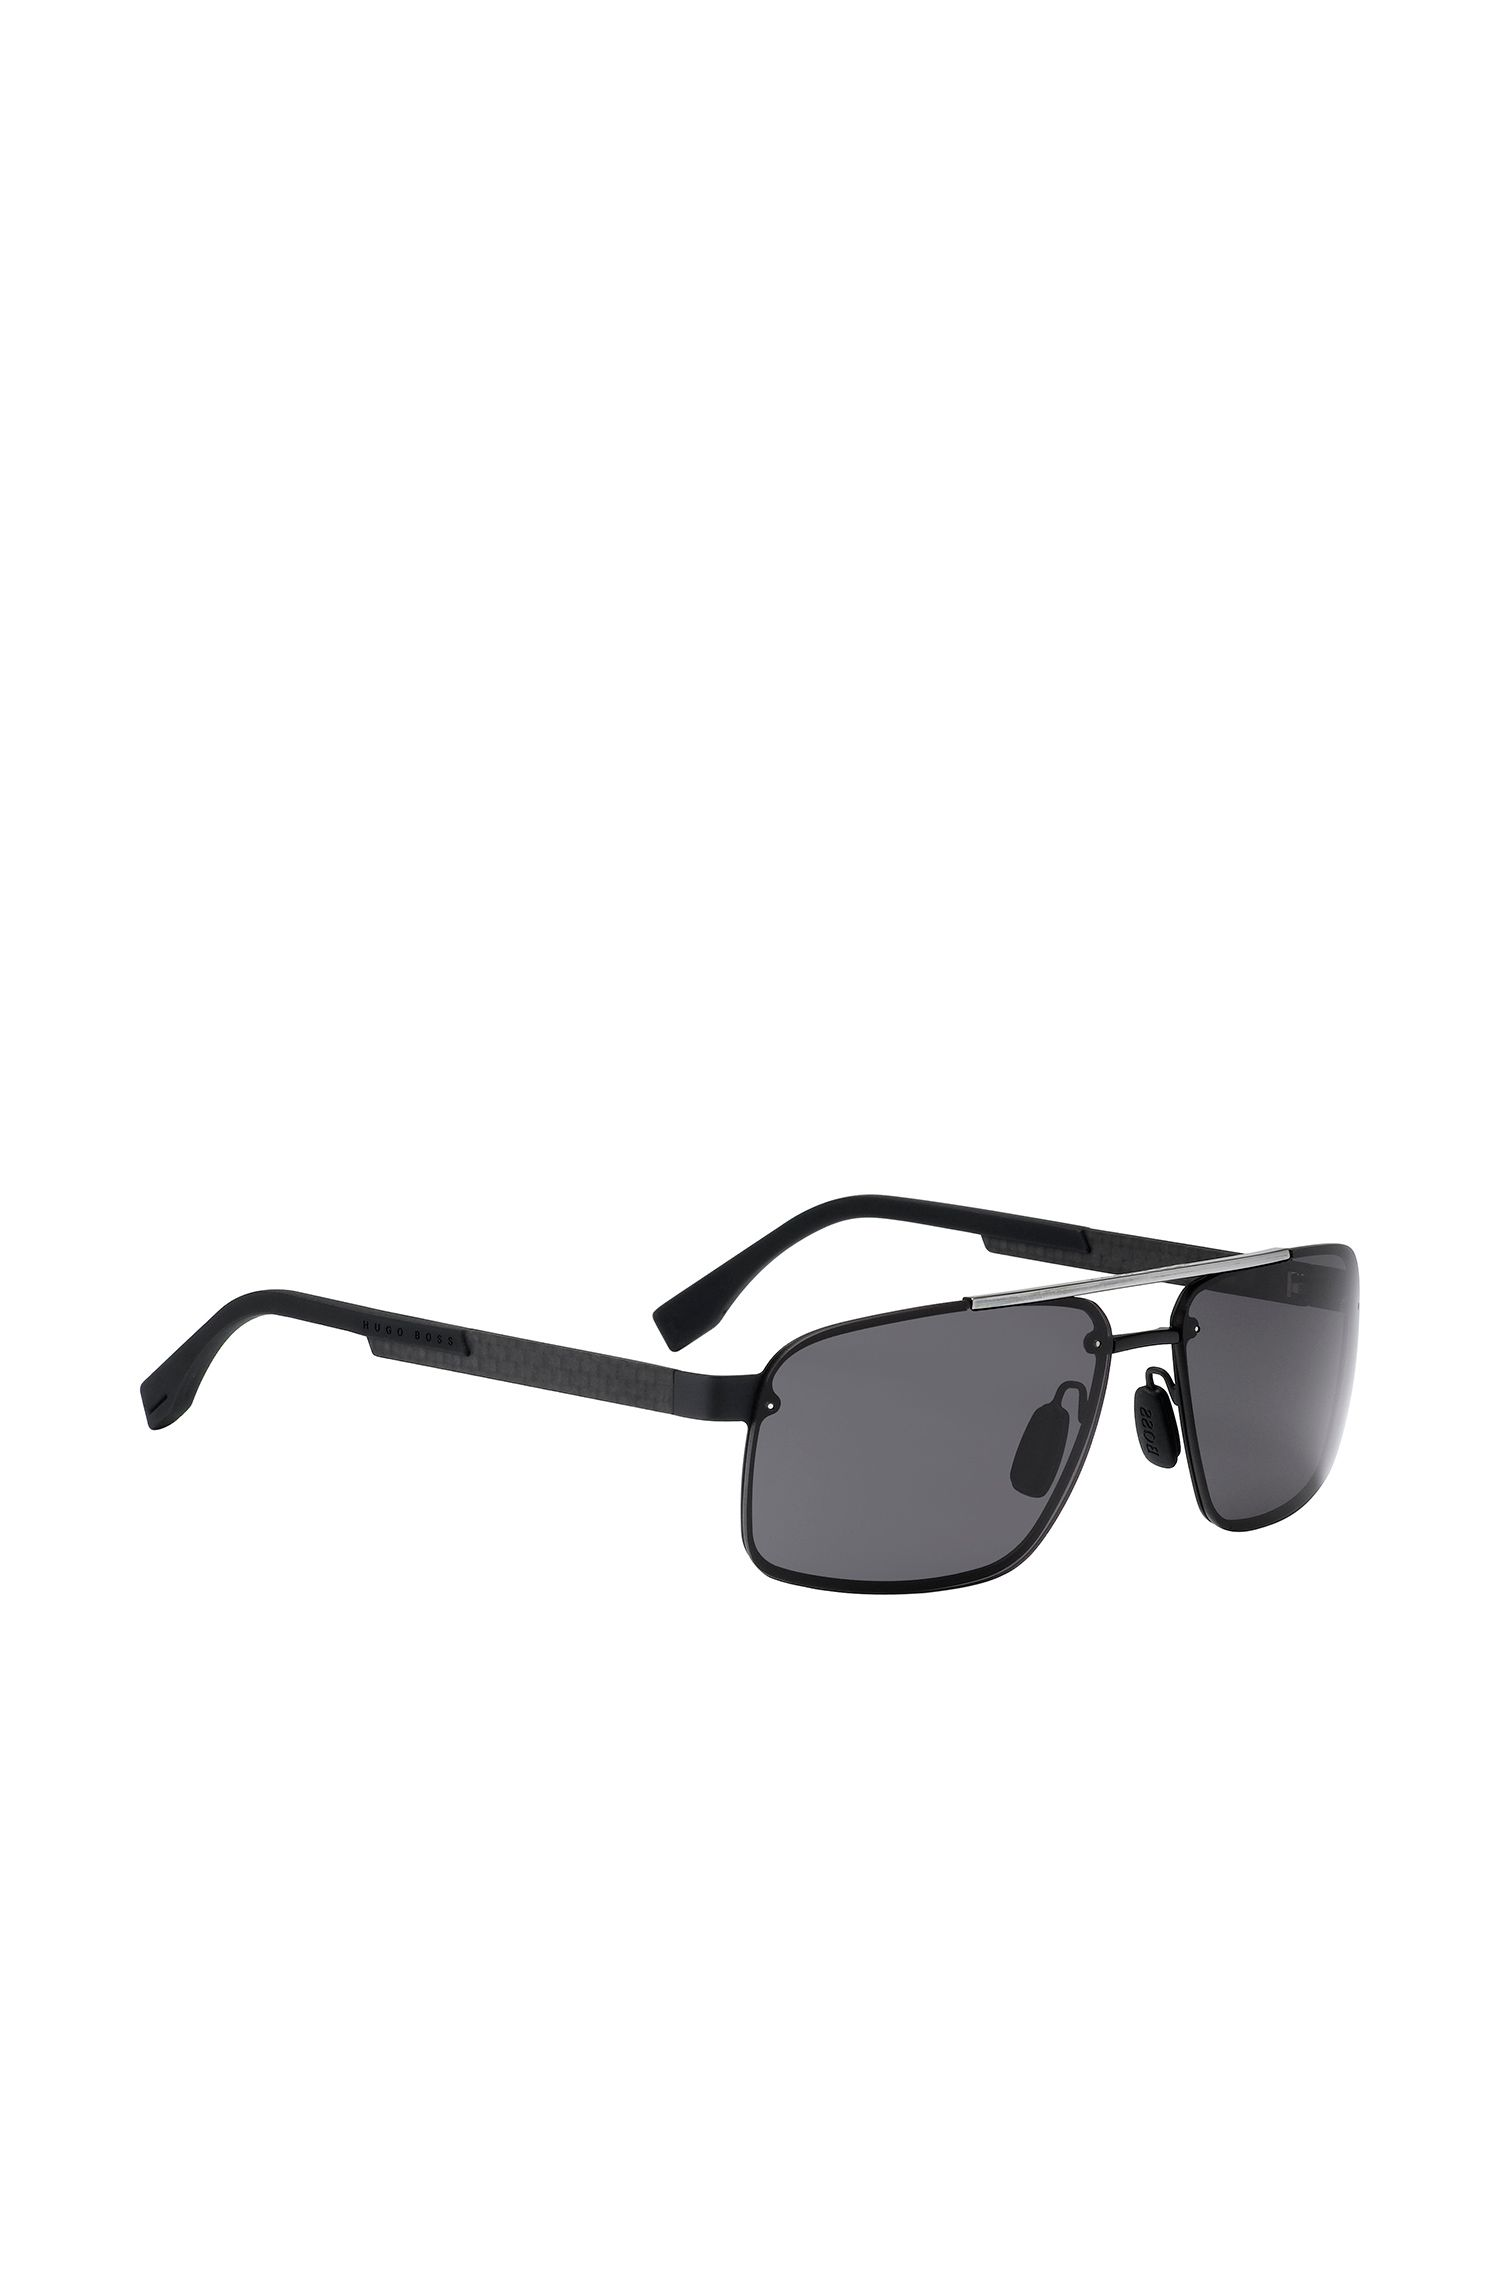 'BOSS 0773S' | Grey Lenses Navigator Sunglasses